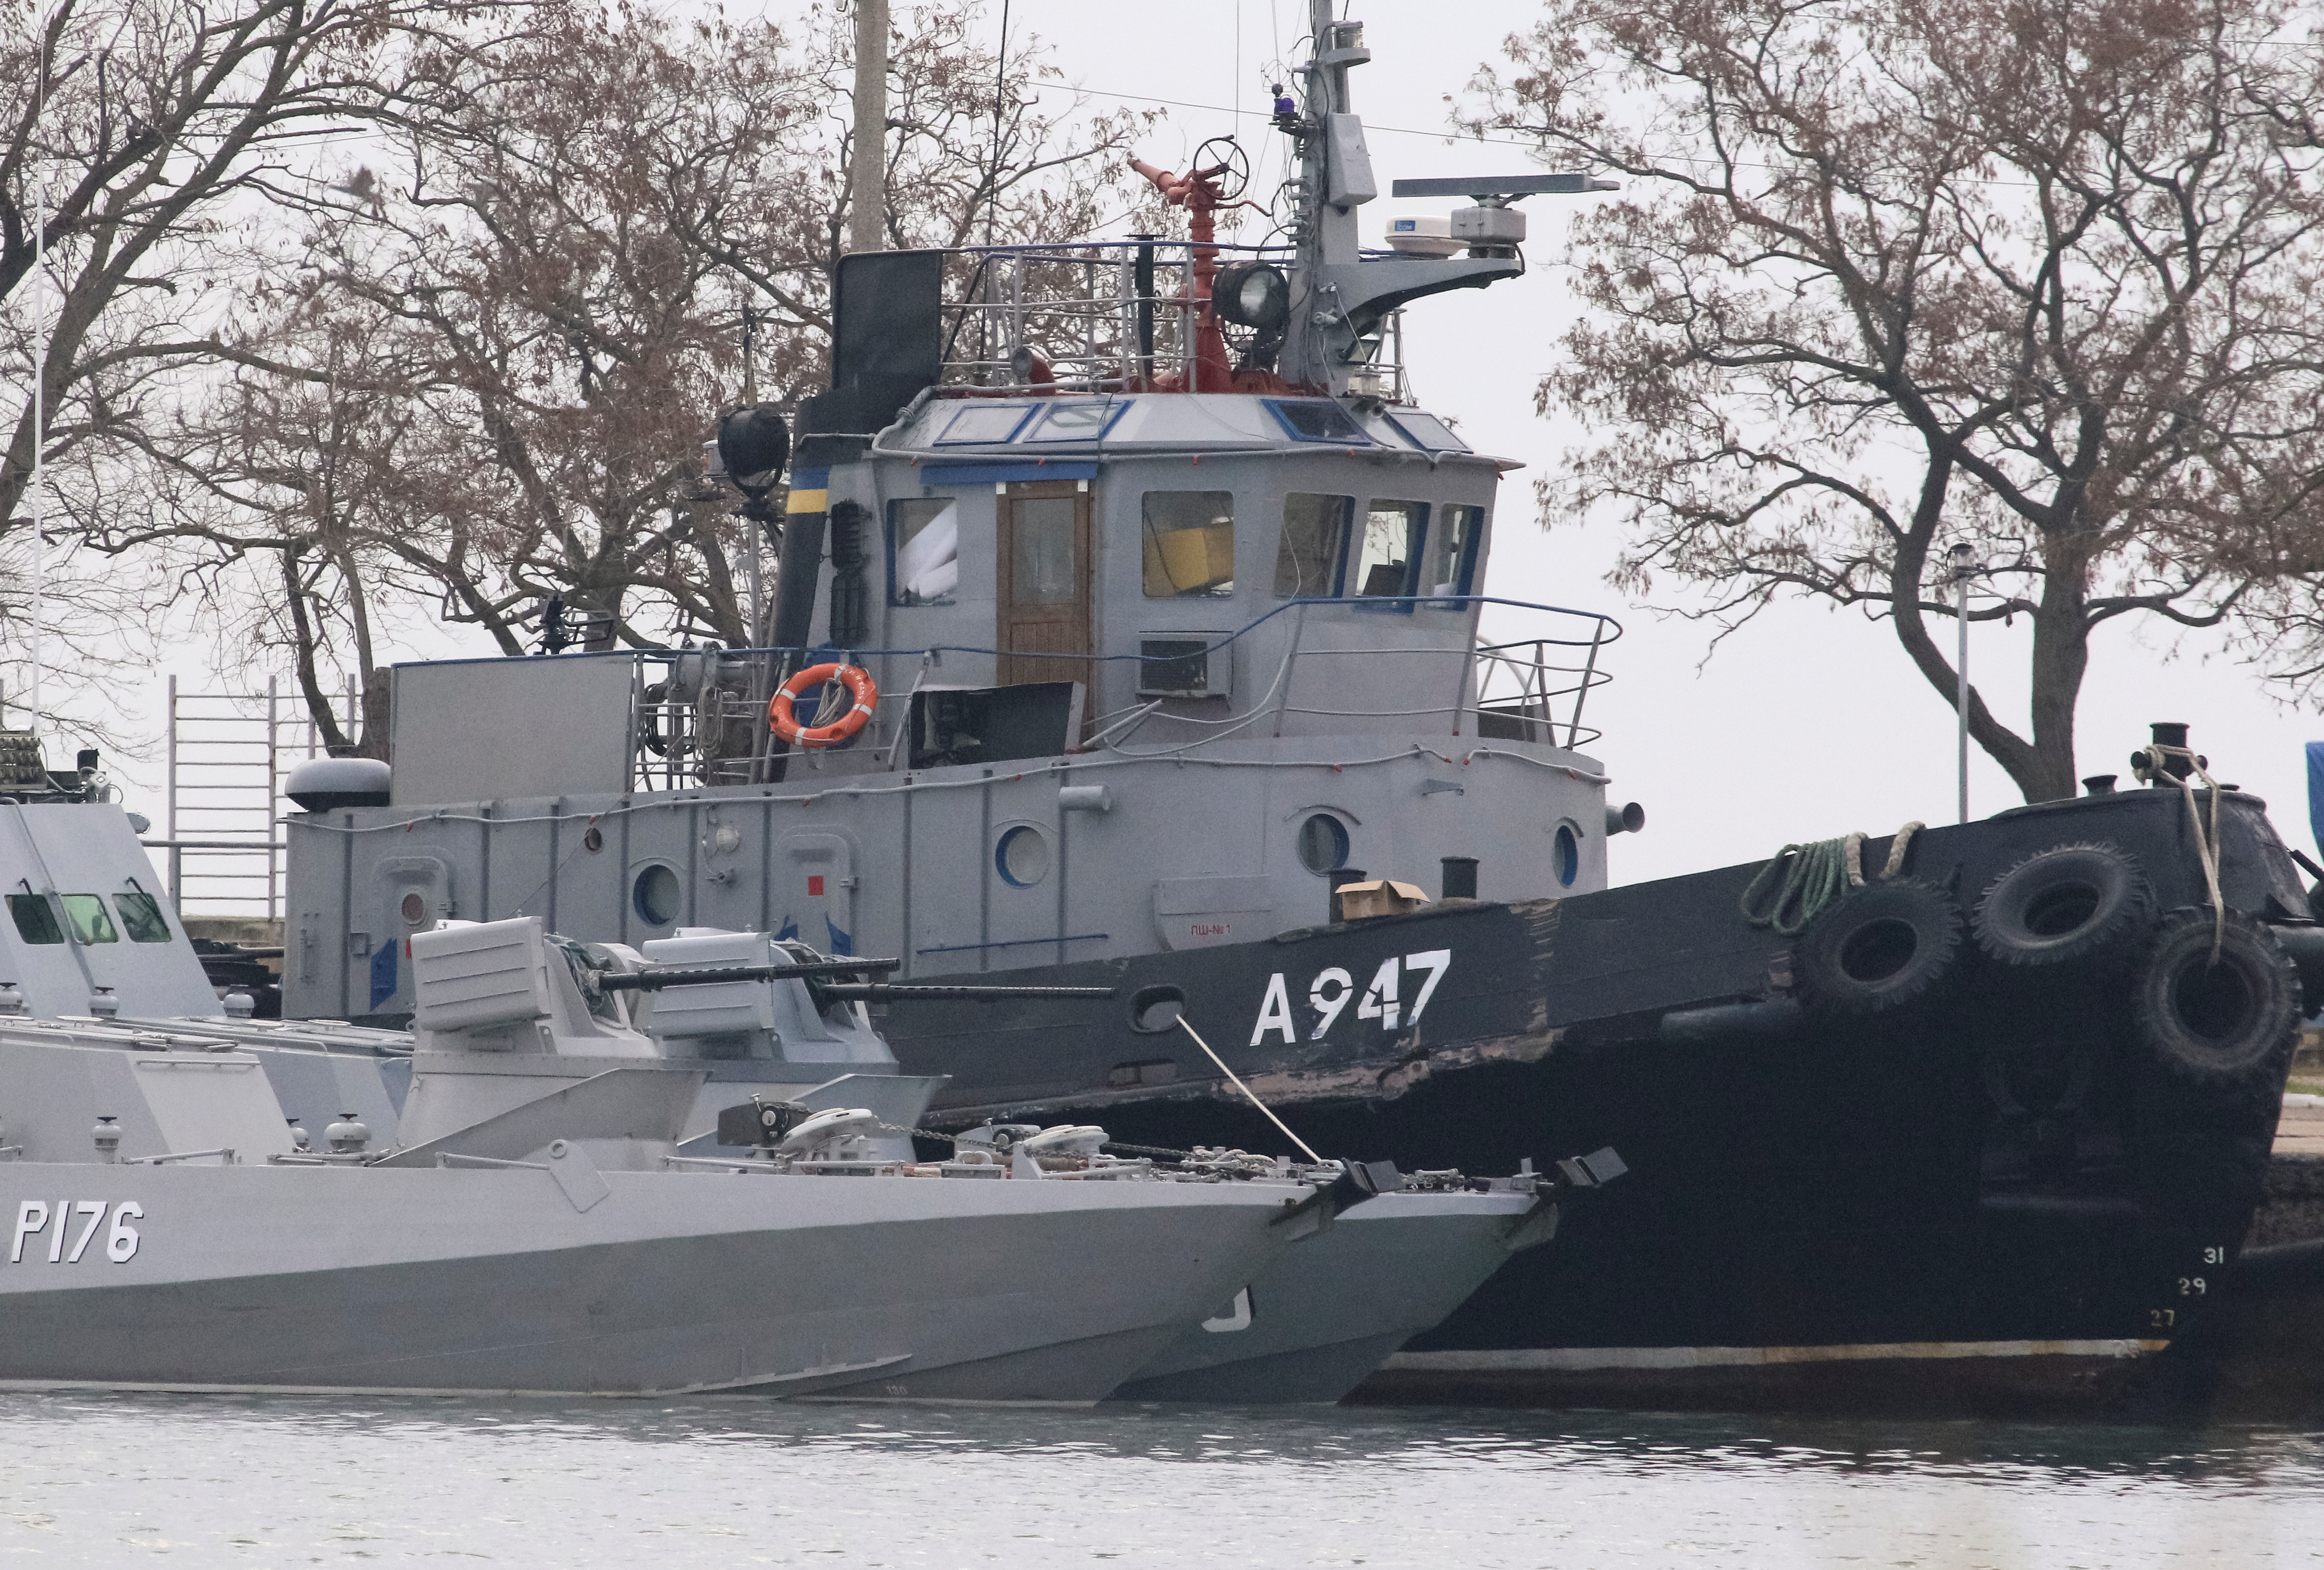 Seized Ukrainian ships, small armored artillery ships and a tug boat, are seen anchored in a port of Kerch, Crimea November 26, 2018.